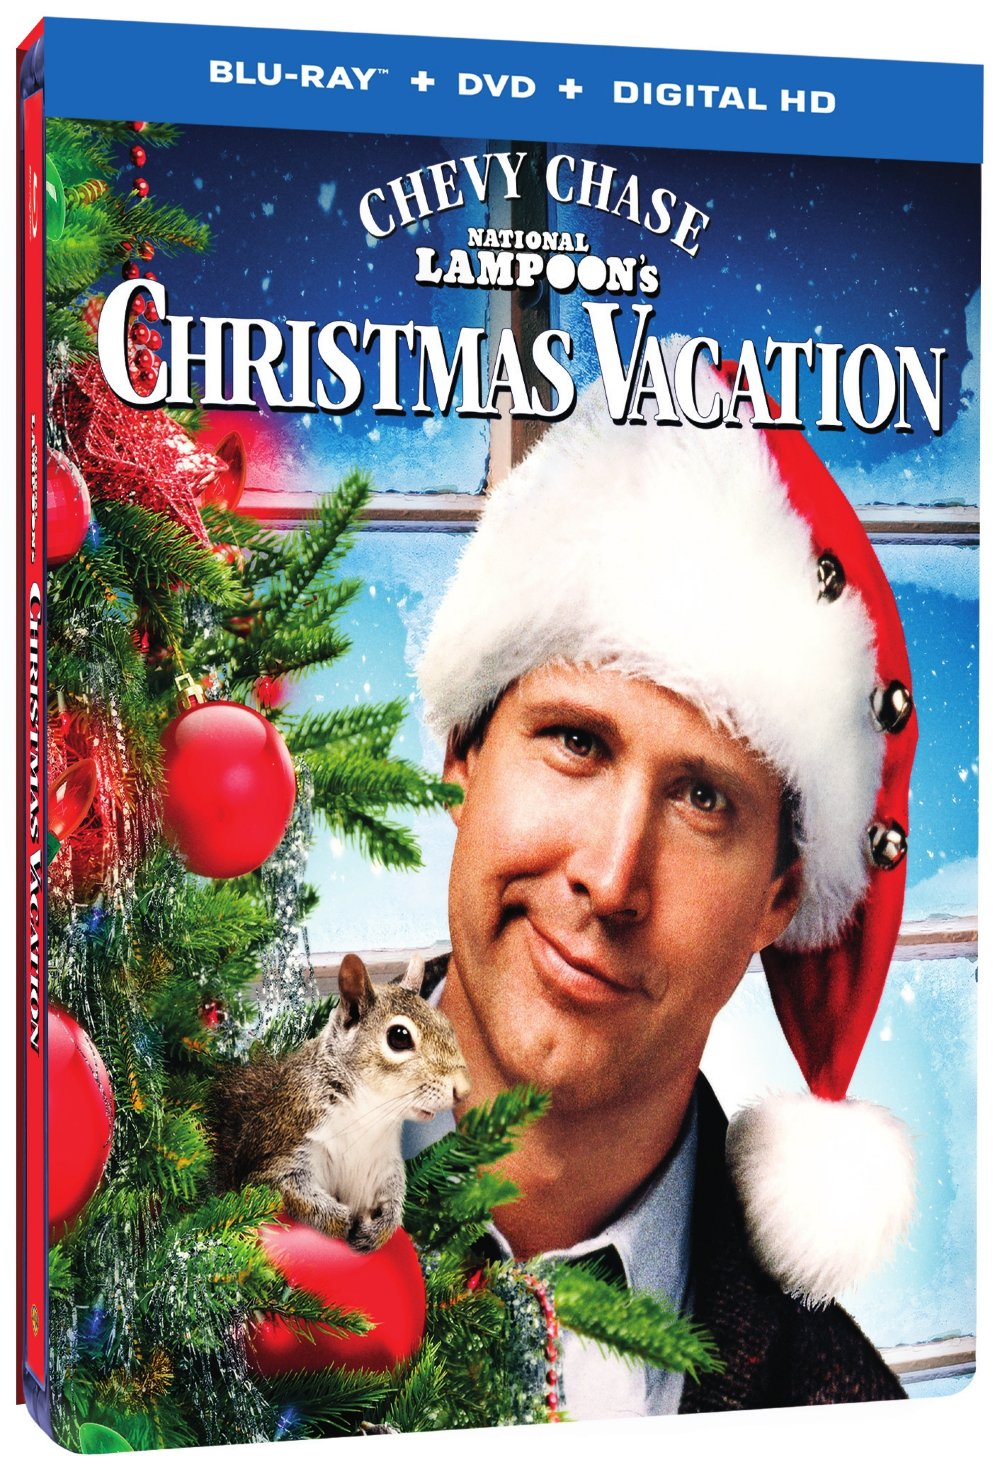 Christmas Vacation Dvd Release Date: National Lampoon's Christmas Vacation (Blu-ray SteelBook